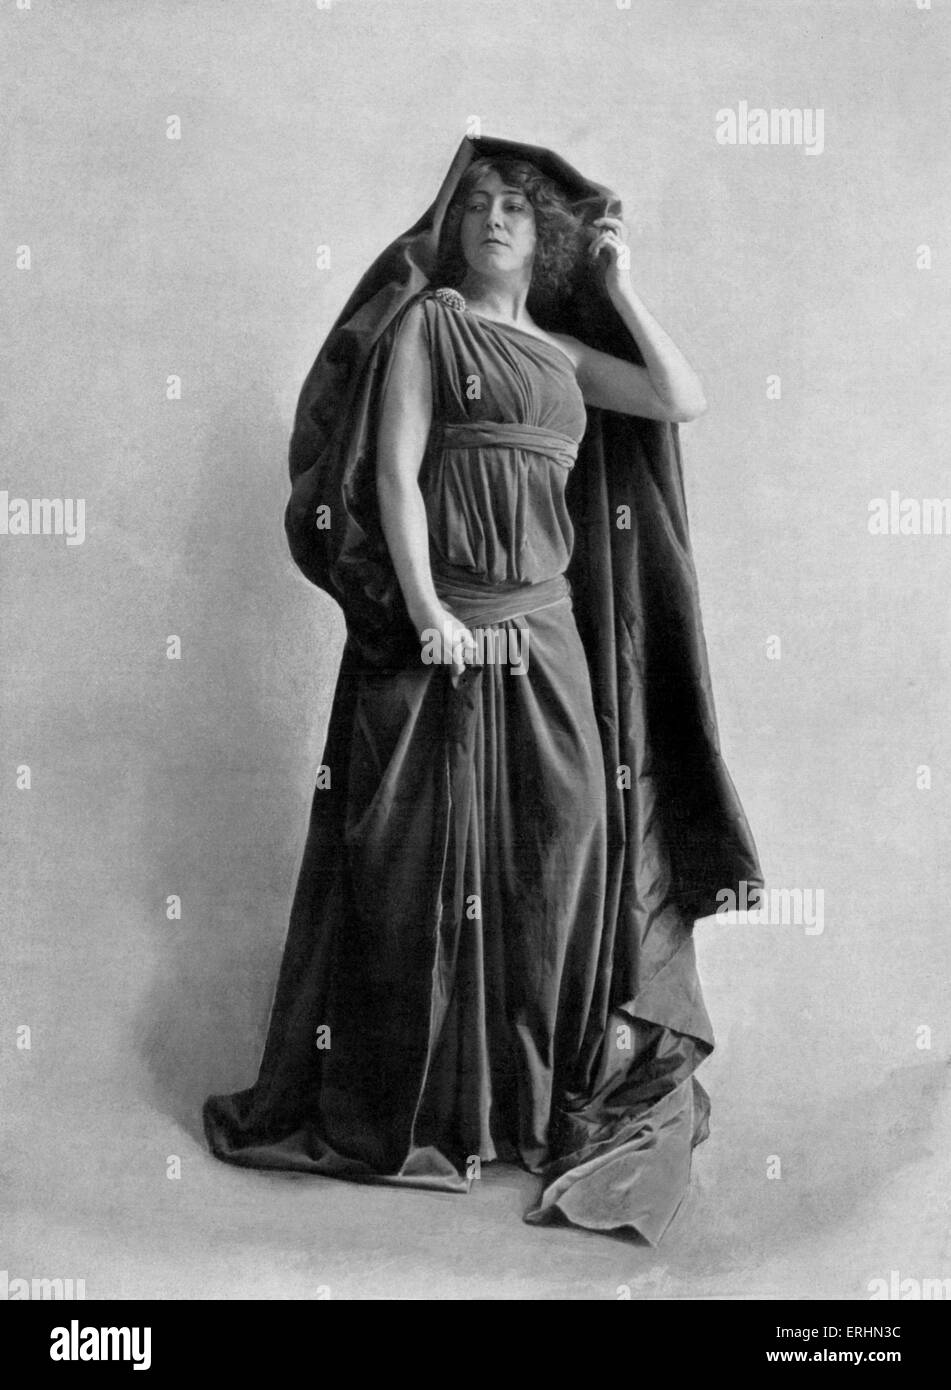 Georgette Leblanc in title role in Maurice Maeterlink 's Monna Vanna Premiered on 7 May 1902 at Théatre de l'Oeuvre. Stock Photo